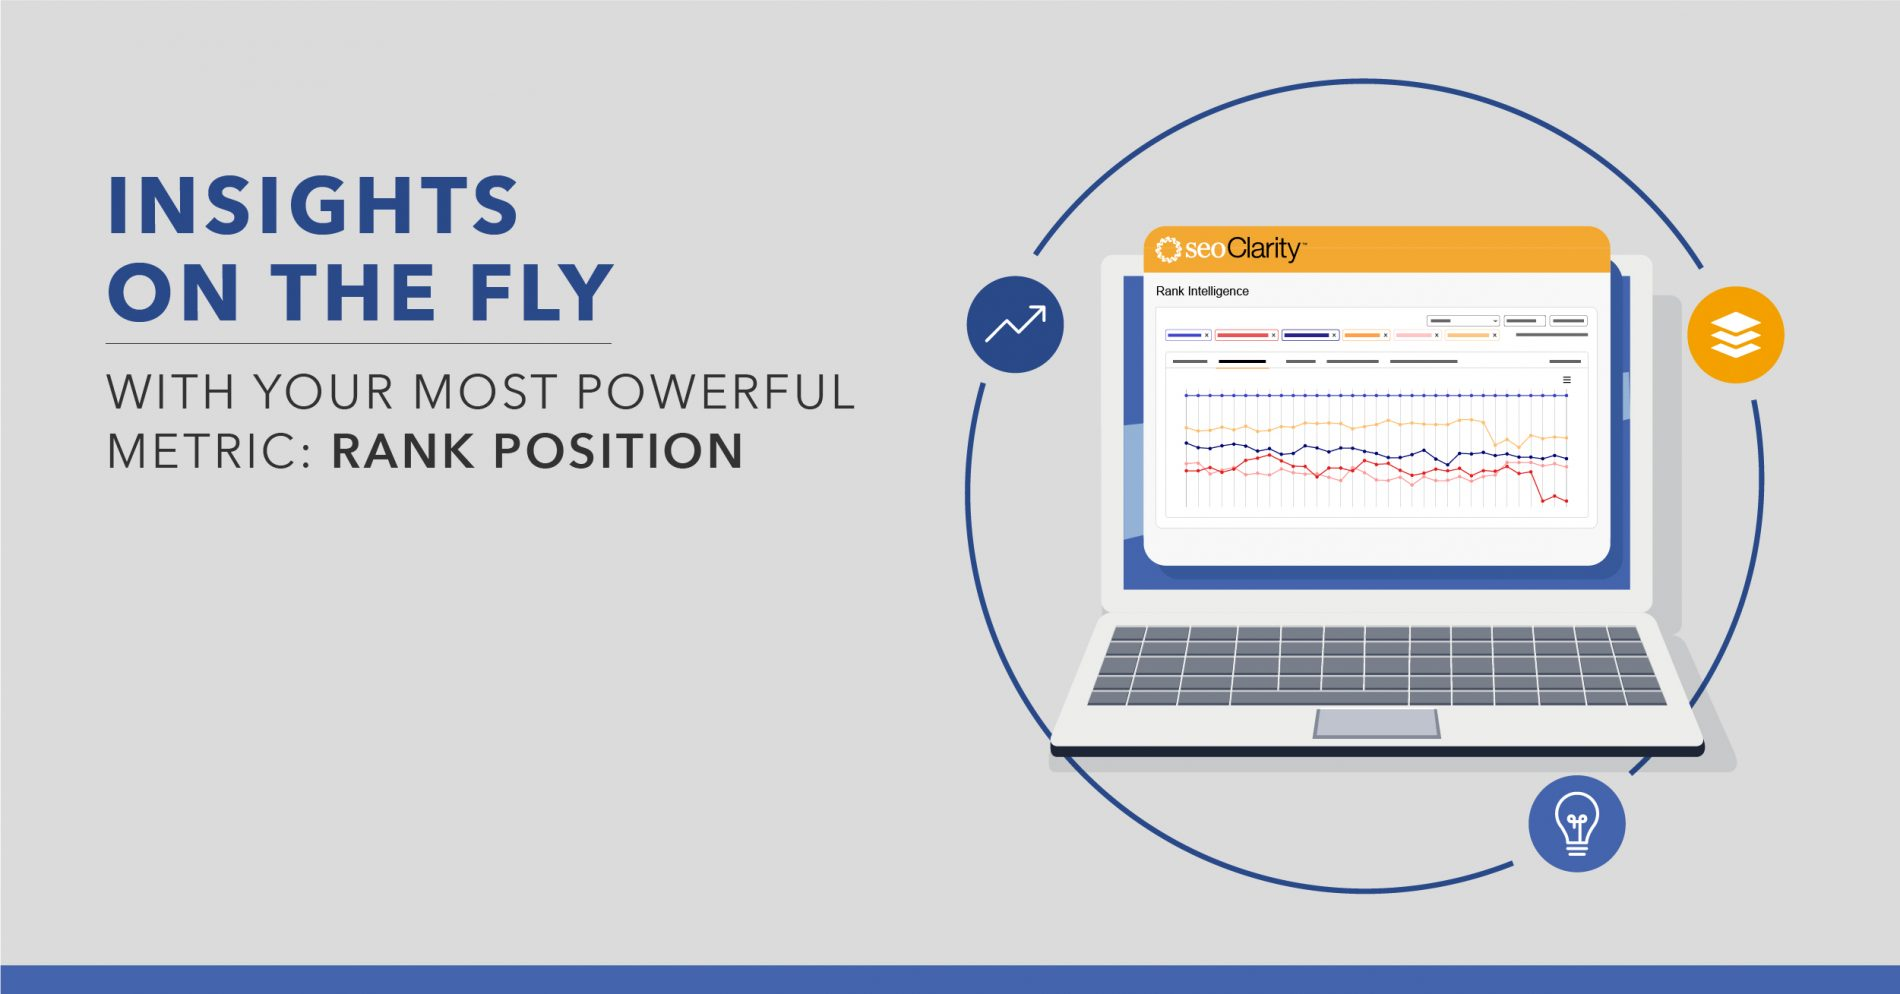 How to Unlock Insights From Your Most Powerful Metric: Rank Position